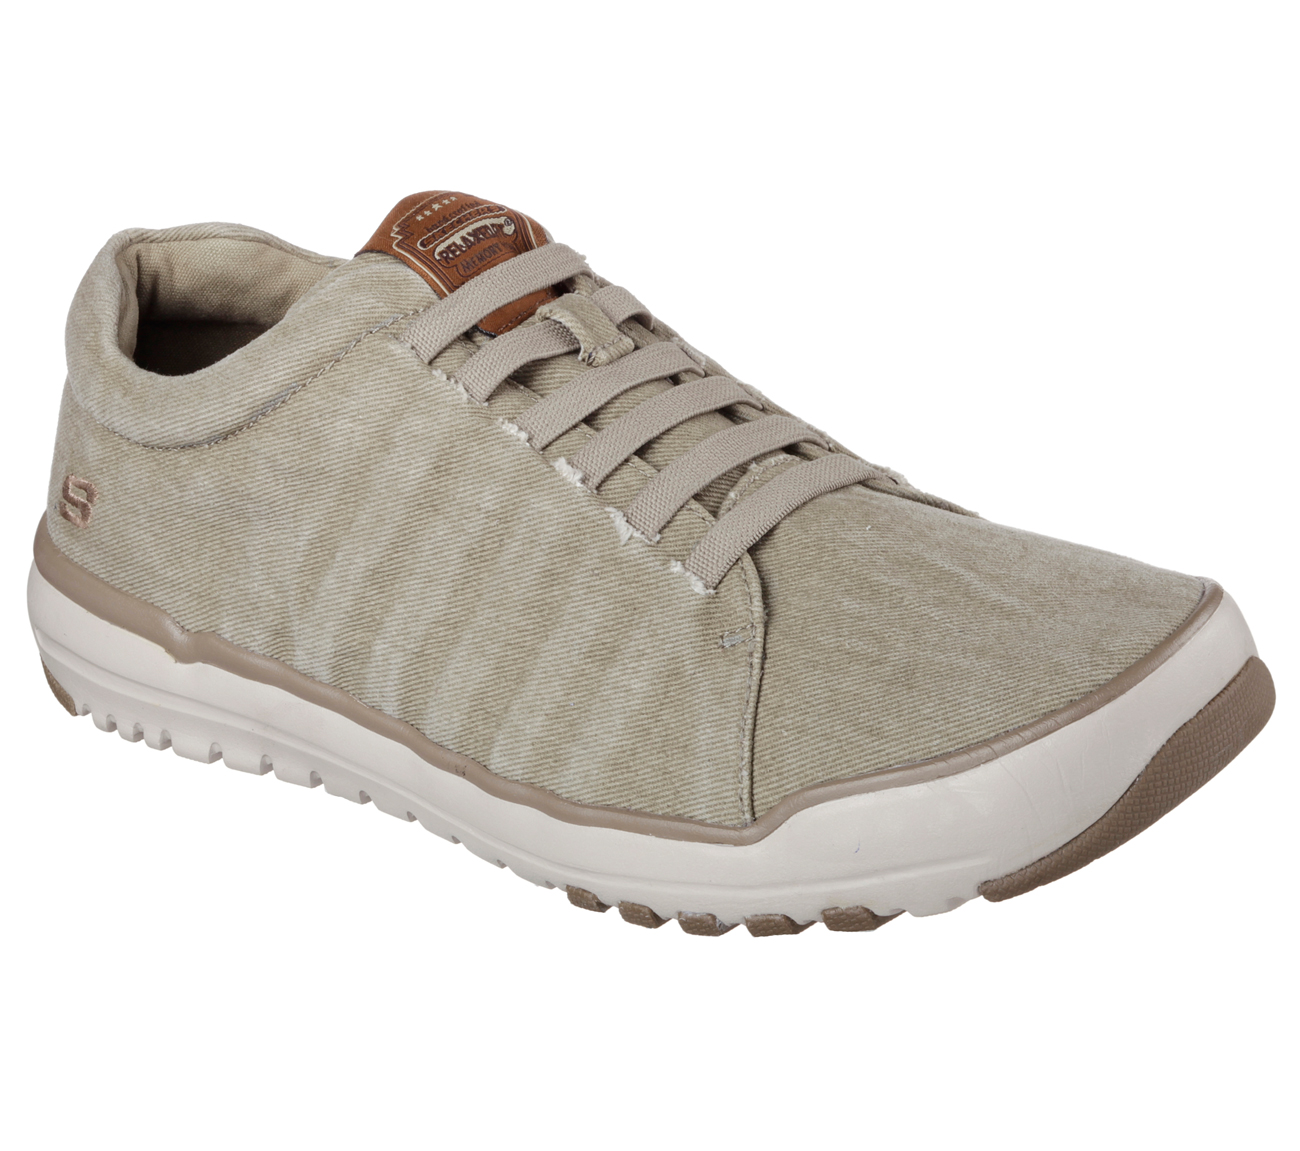 Skechers Shoes Mens Brown Sale > Off64% Discounted